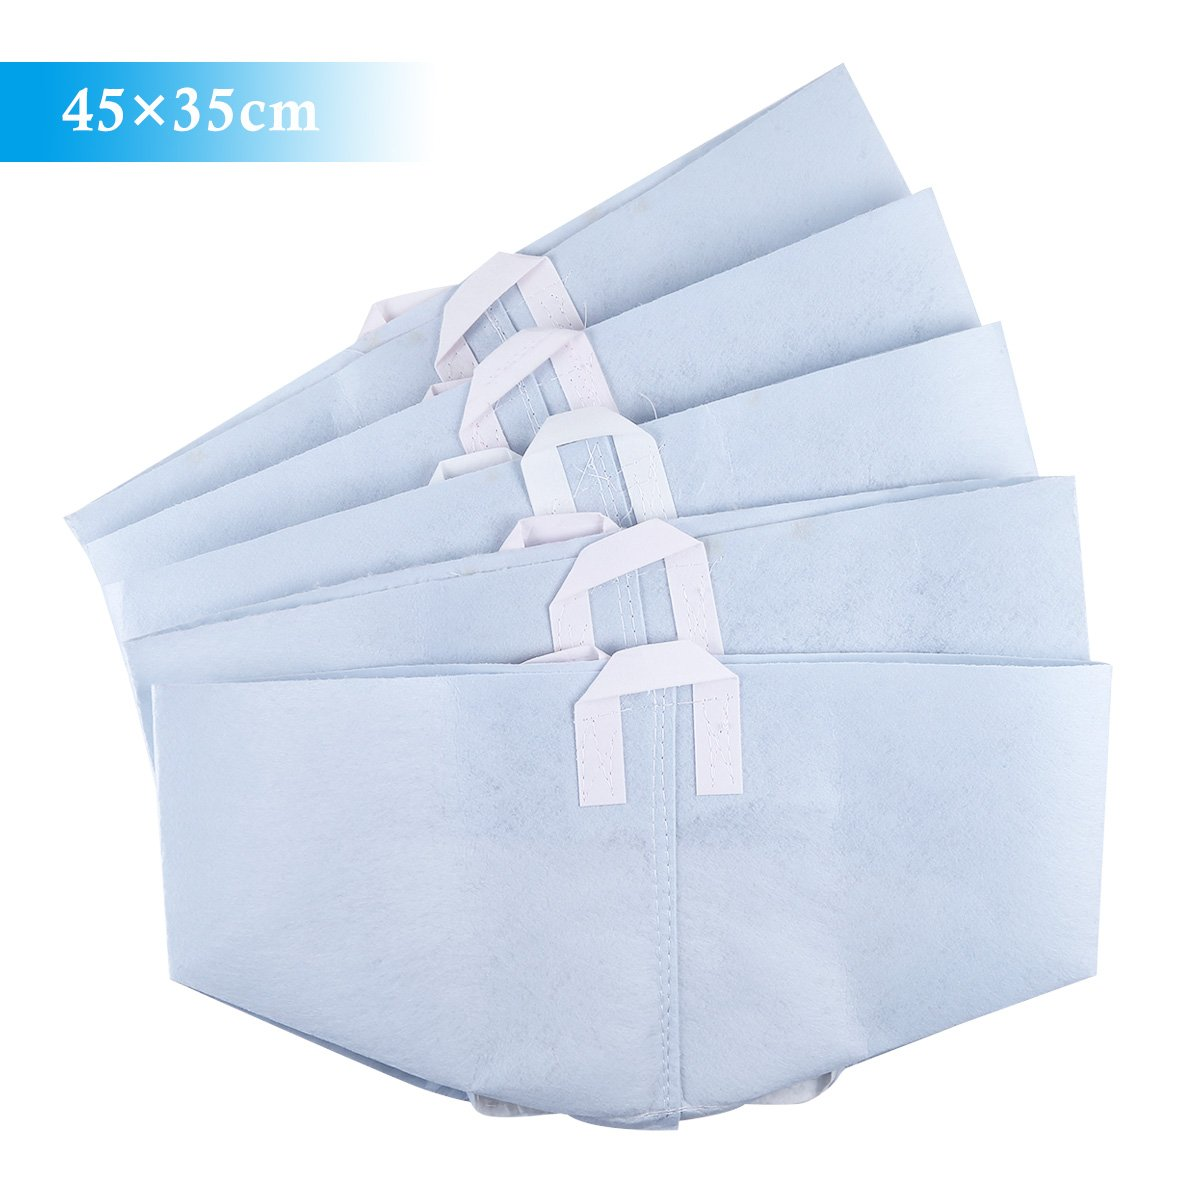 Freebily 5pcs Thickened Non-woven Garden Planting Grow Bags Smart Plant Pots Container with Handles Light Blue 45×35cm